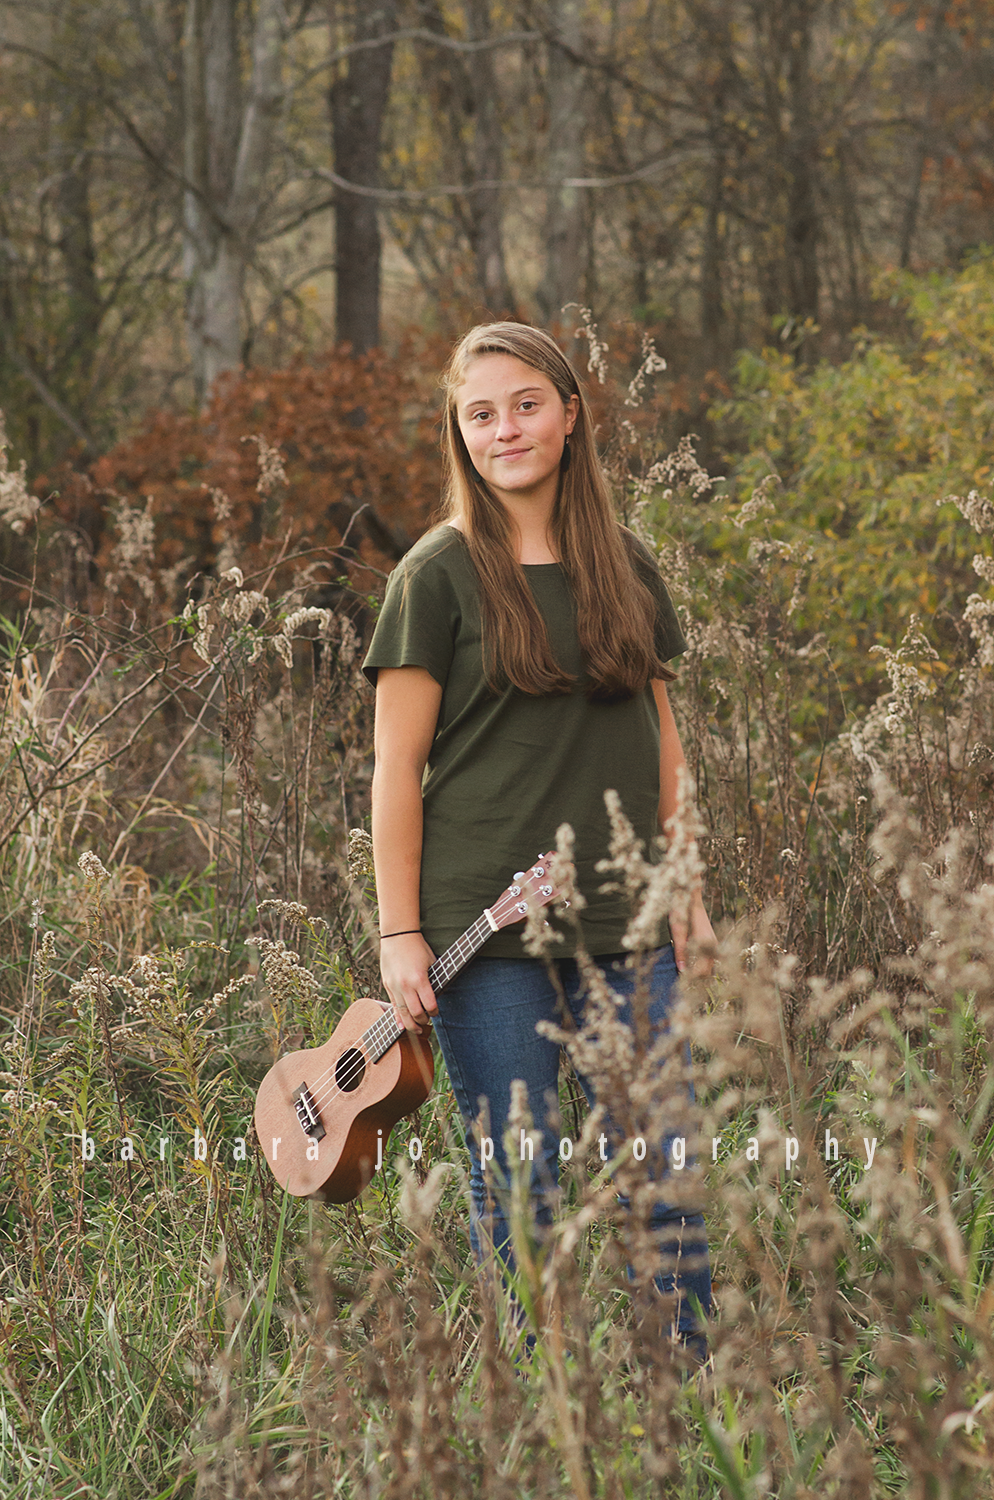 bjp-senior-pictures-portraits-class-of-2018-dover-oh-fall-autumn-woods-graduate-abby12.png